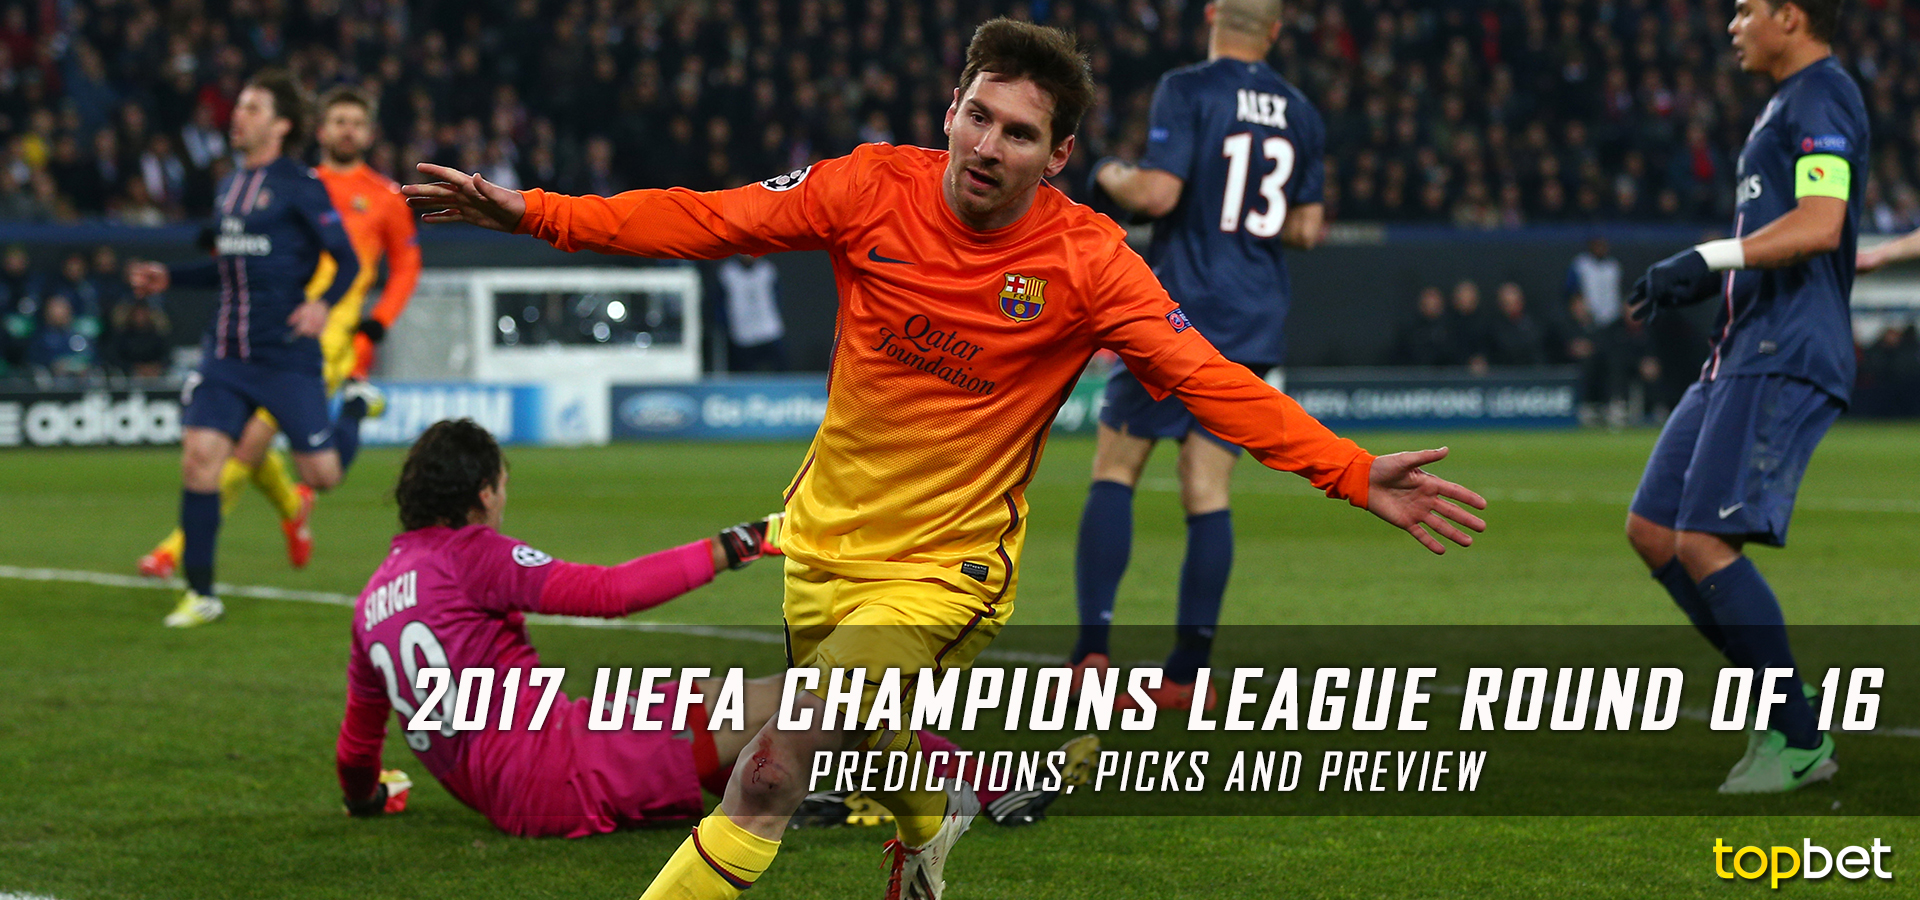 2016-17 UEFA Champions League Round of 16 Predictions & Picks